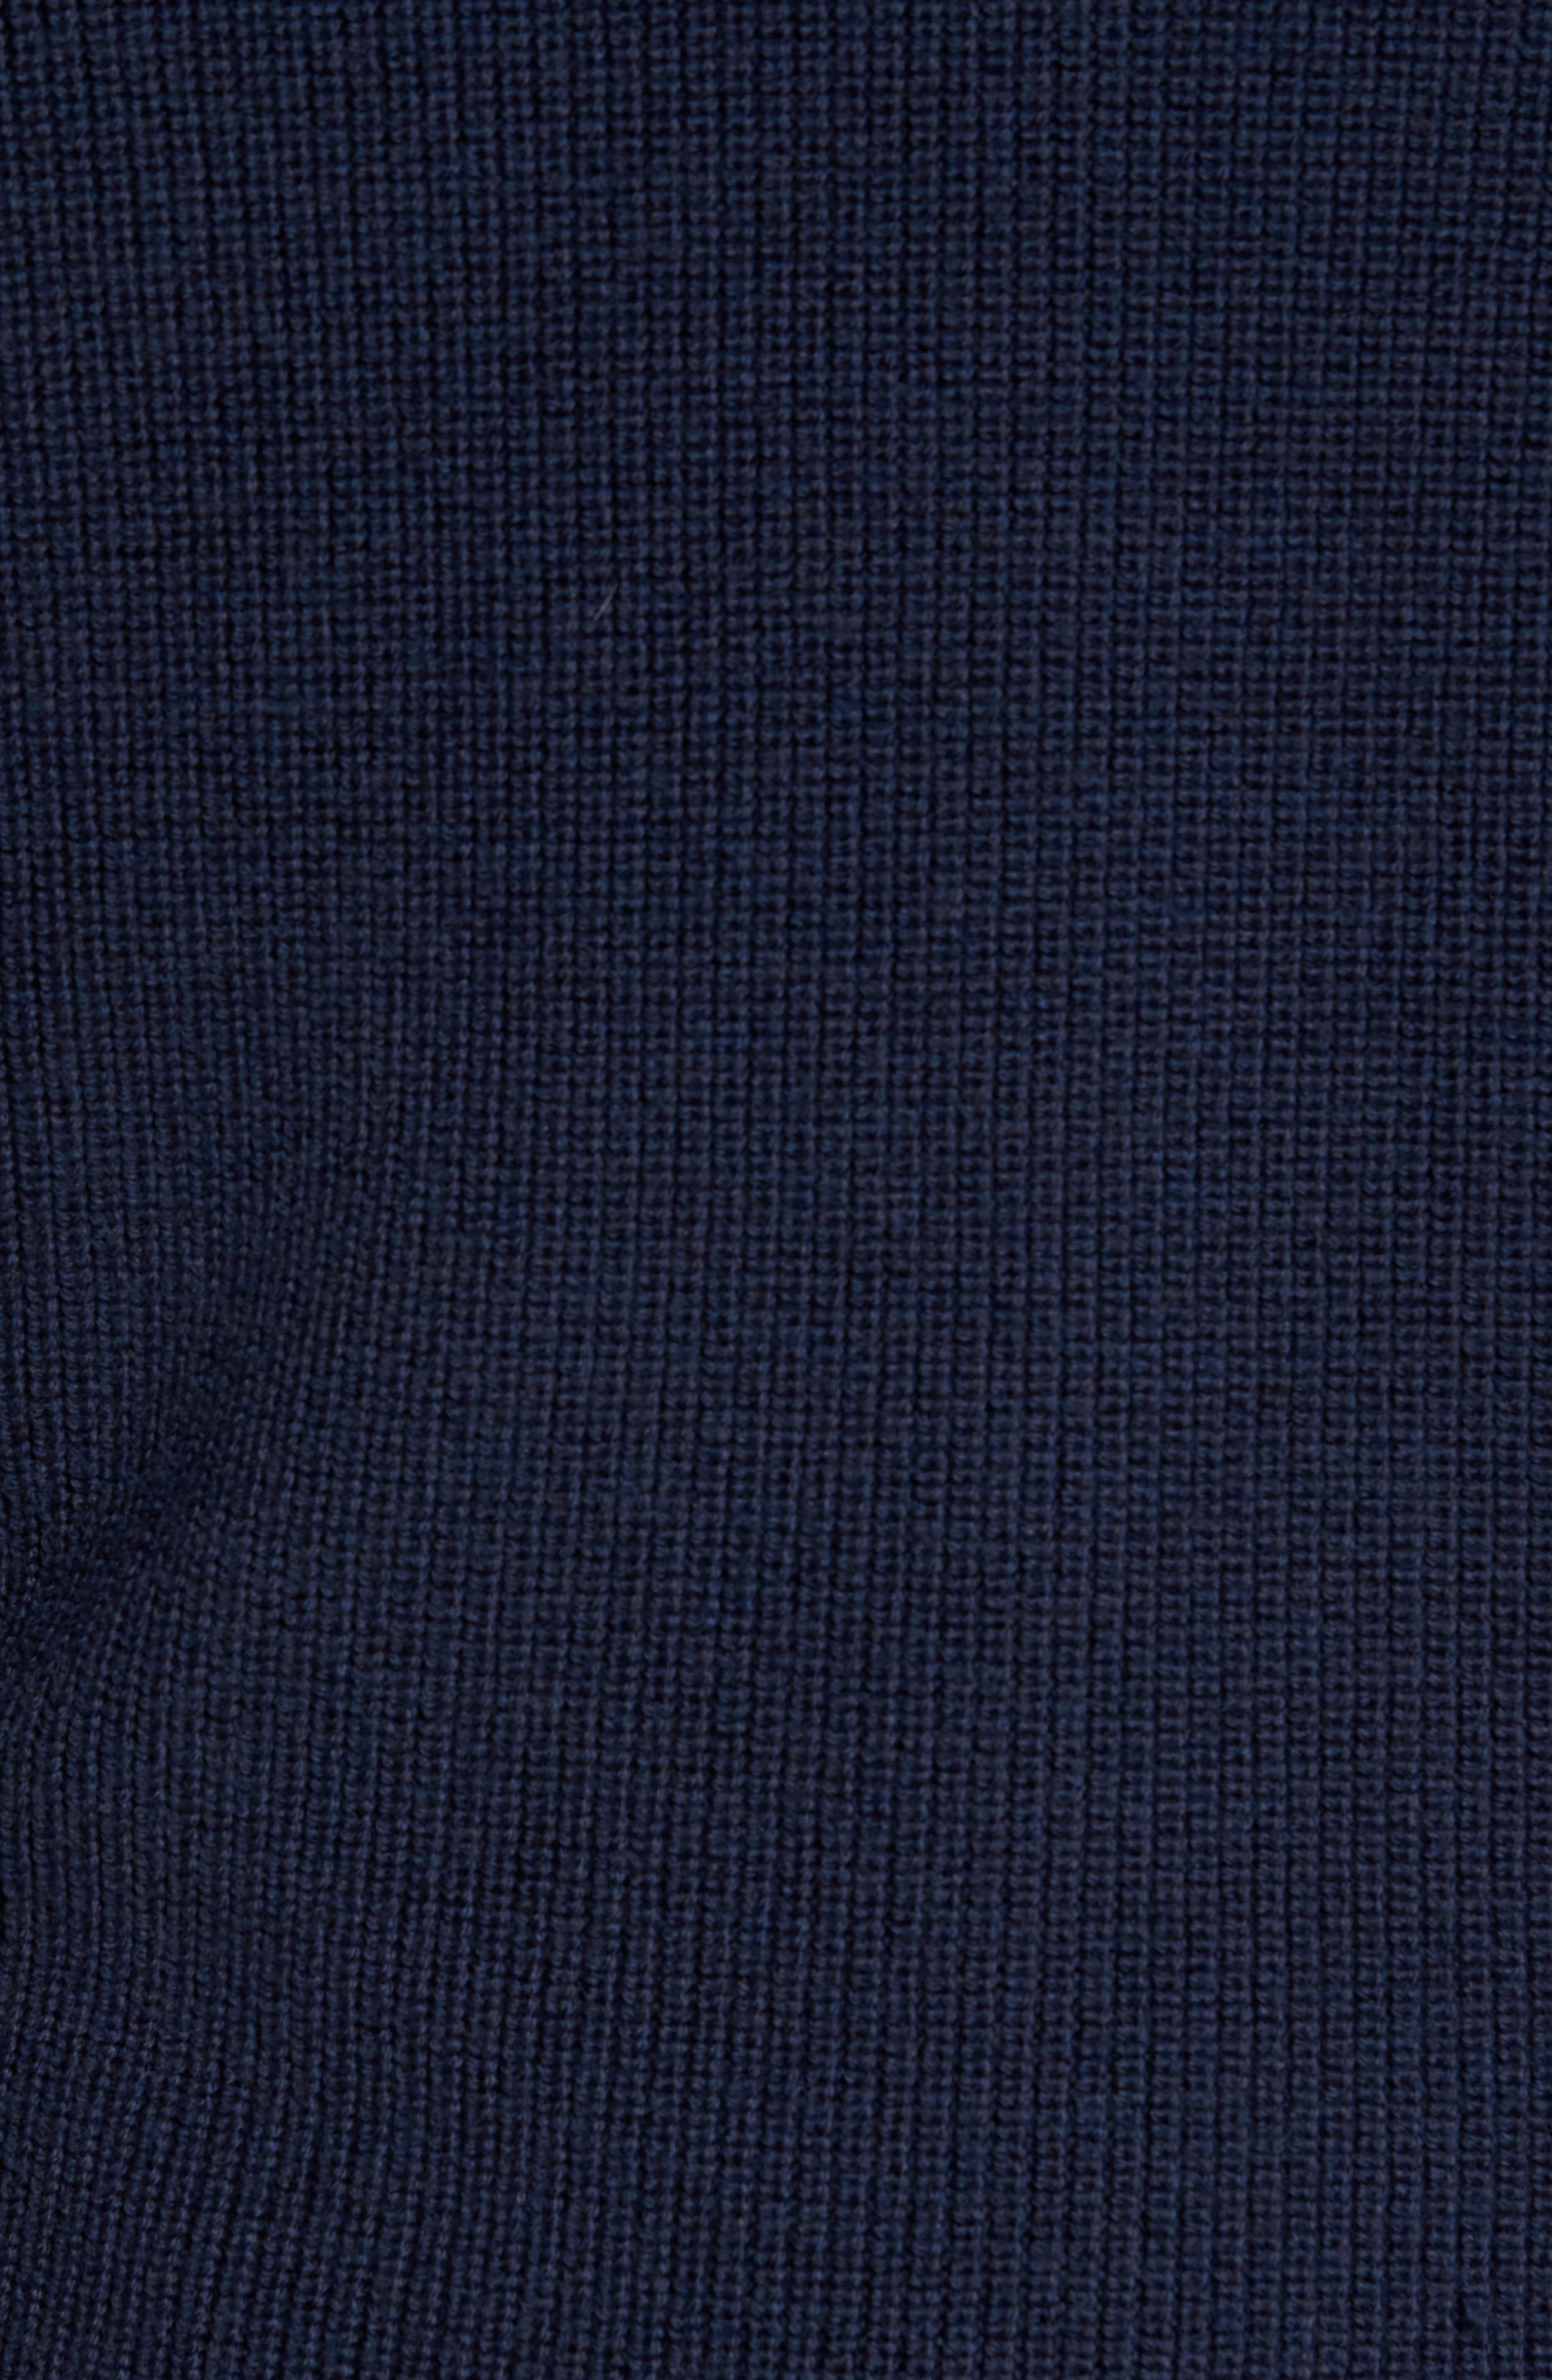 Charlesworth Suede Patch Merino Wool Sweater,                             Alternate thumbnail 5, color,                             Marine